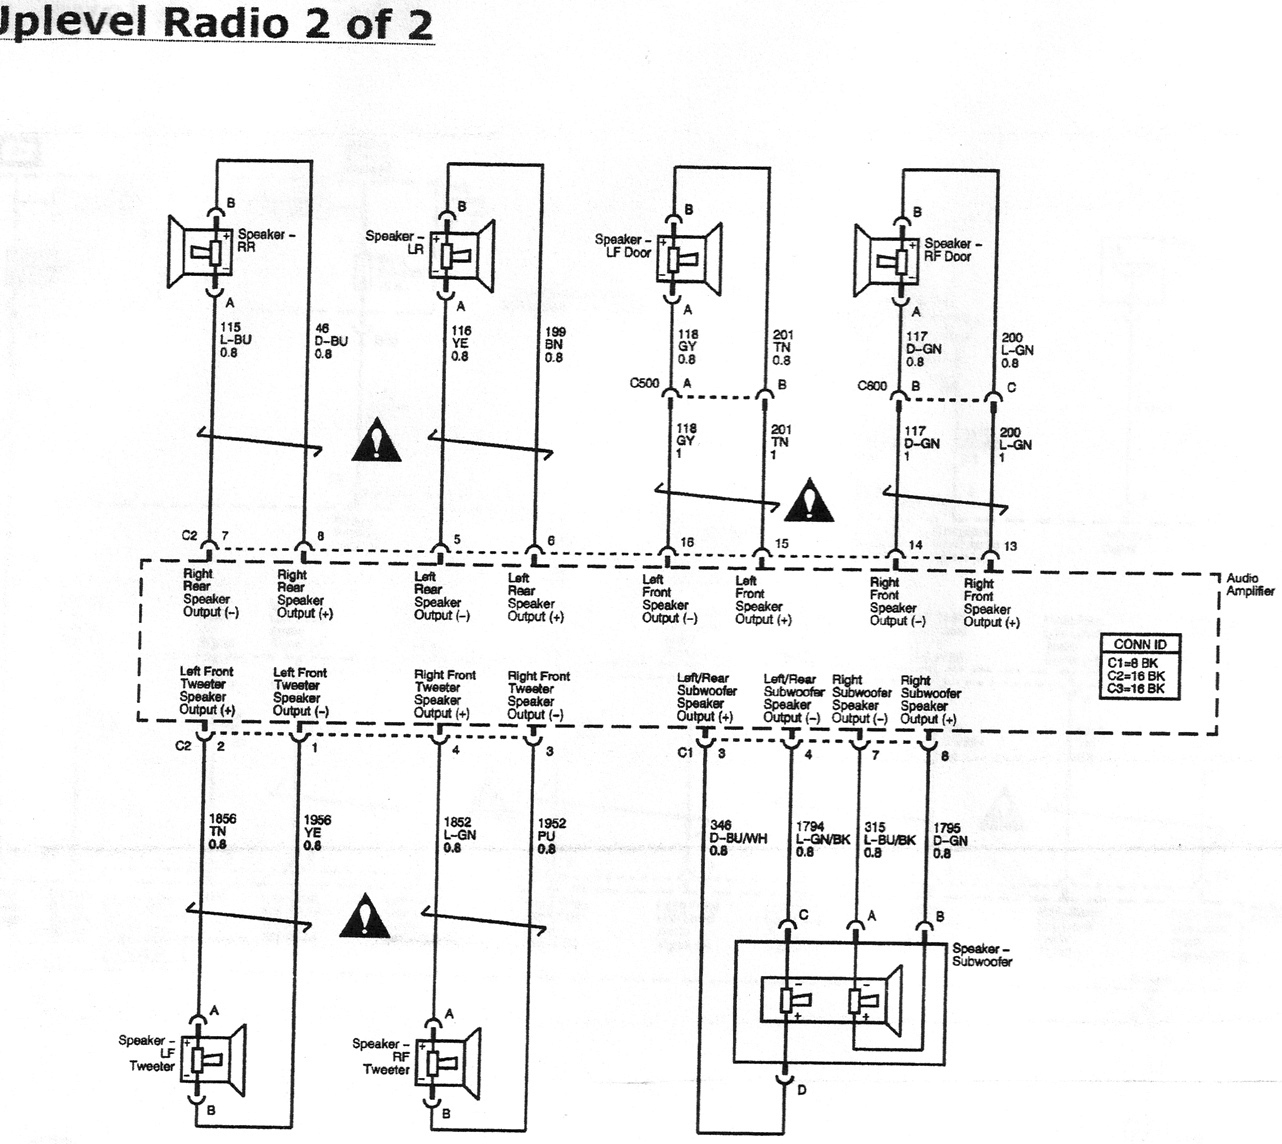 29802 monsoon amp speaker replacement monsoon_wiring_diagram_page_2 monsoon amp and speaker replacement saturn sky forums saturn 2011 jetta speaker wire diagram at panicattacktreatment.co